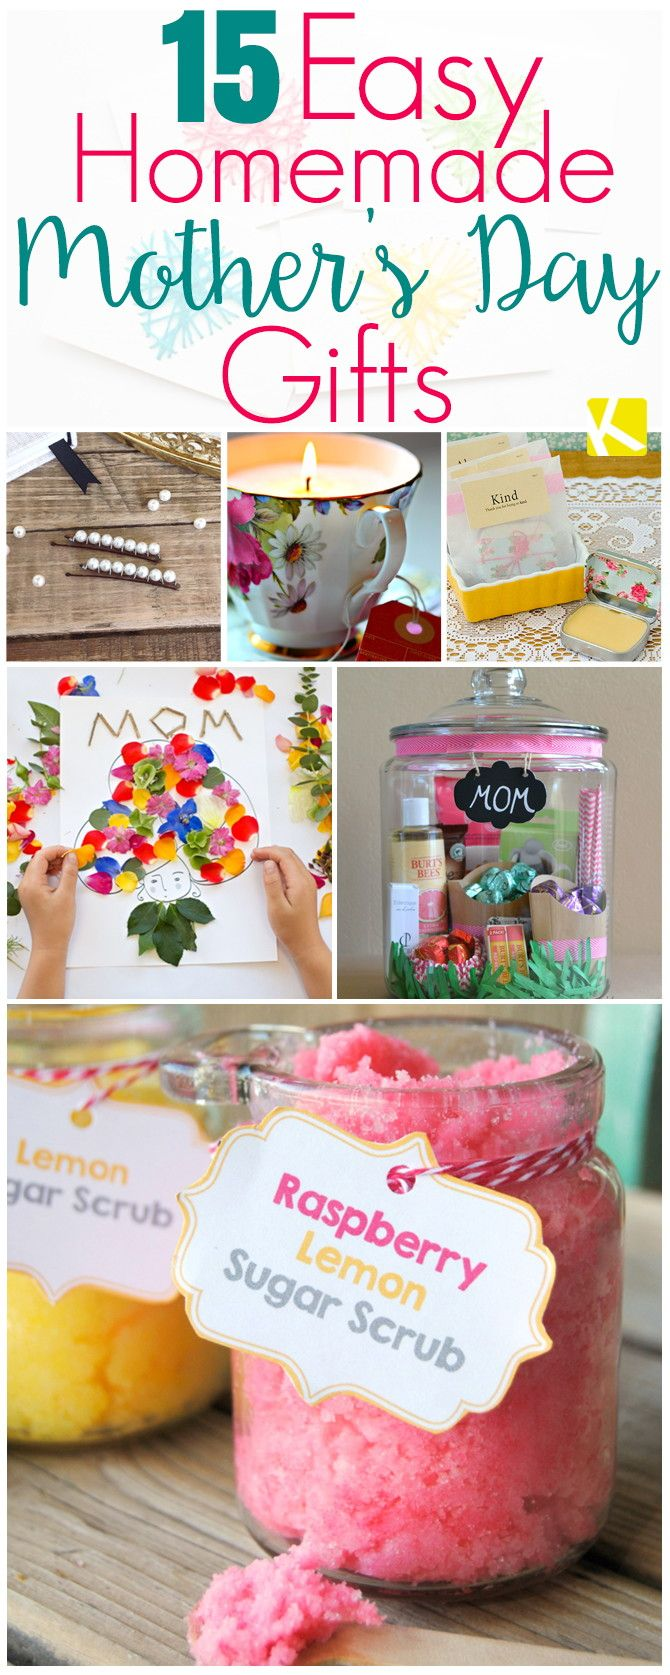 Easy Mother's Day presents for kids to make for their mothers, grandmothers and aunties!